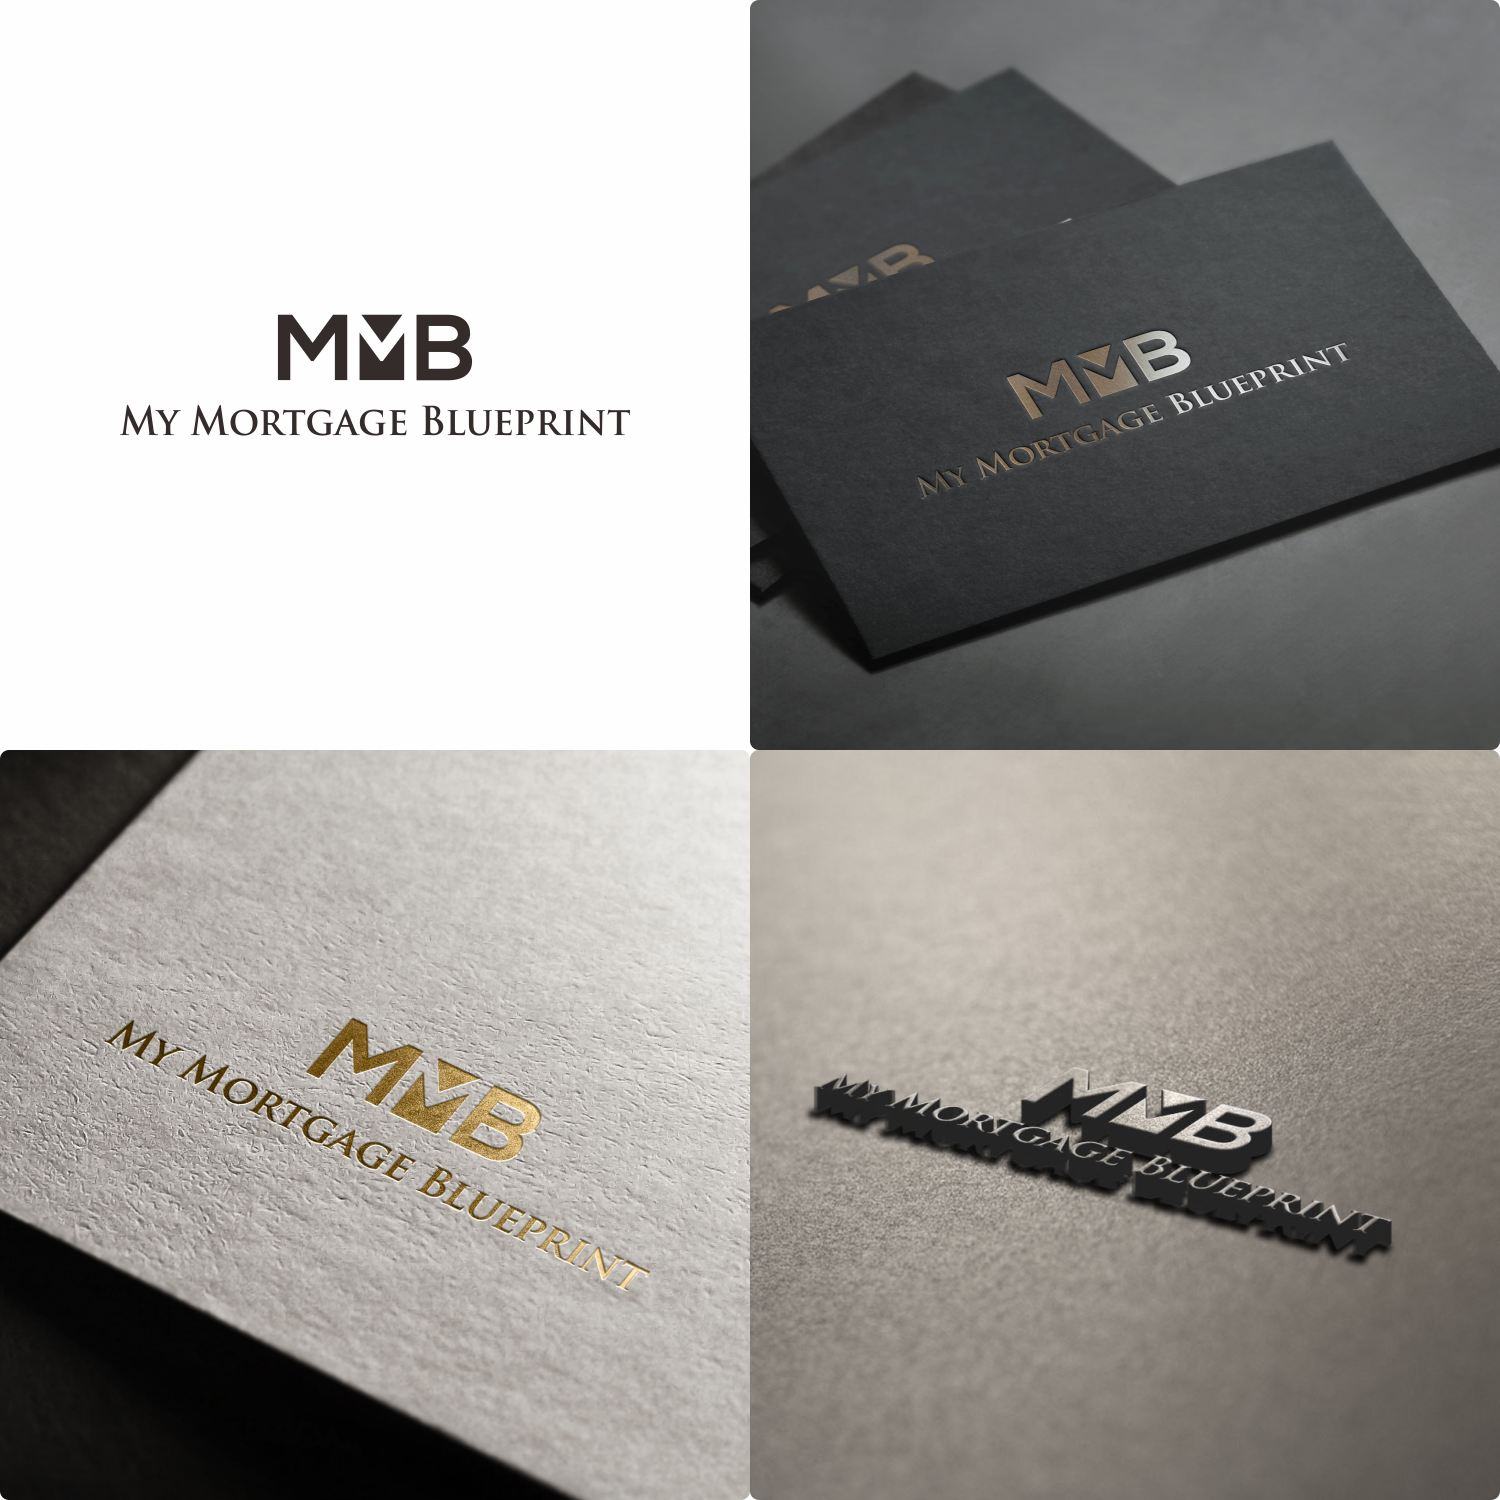 Professional bold mortgage logo design for my mortgage blueprint logo design by yulianto 2 for my mortgage blueprint design 15617677 malvernweather Gallery